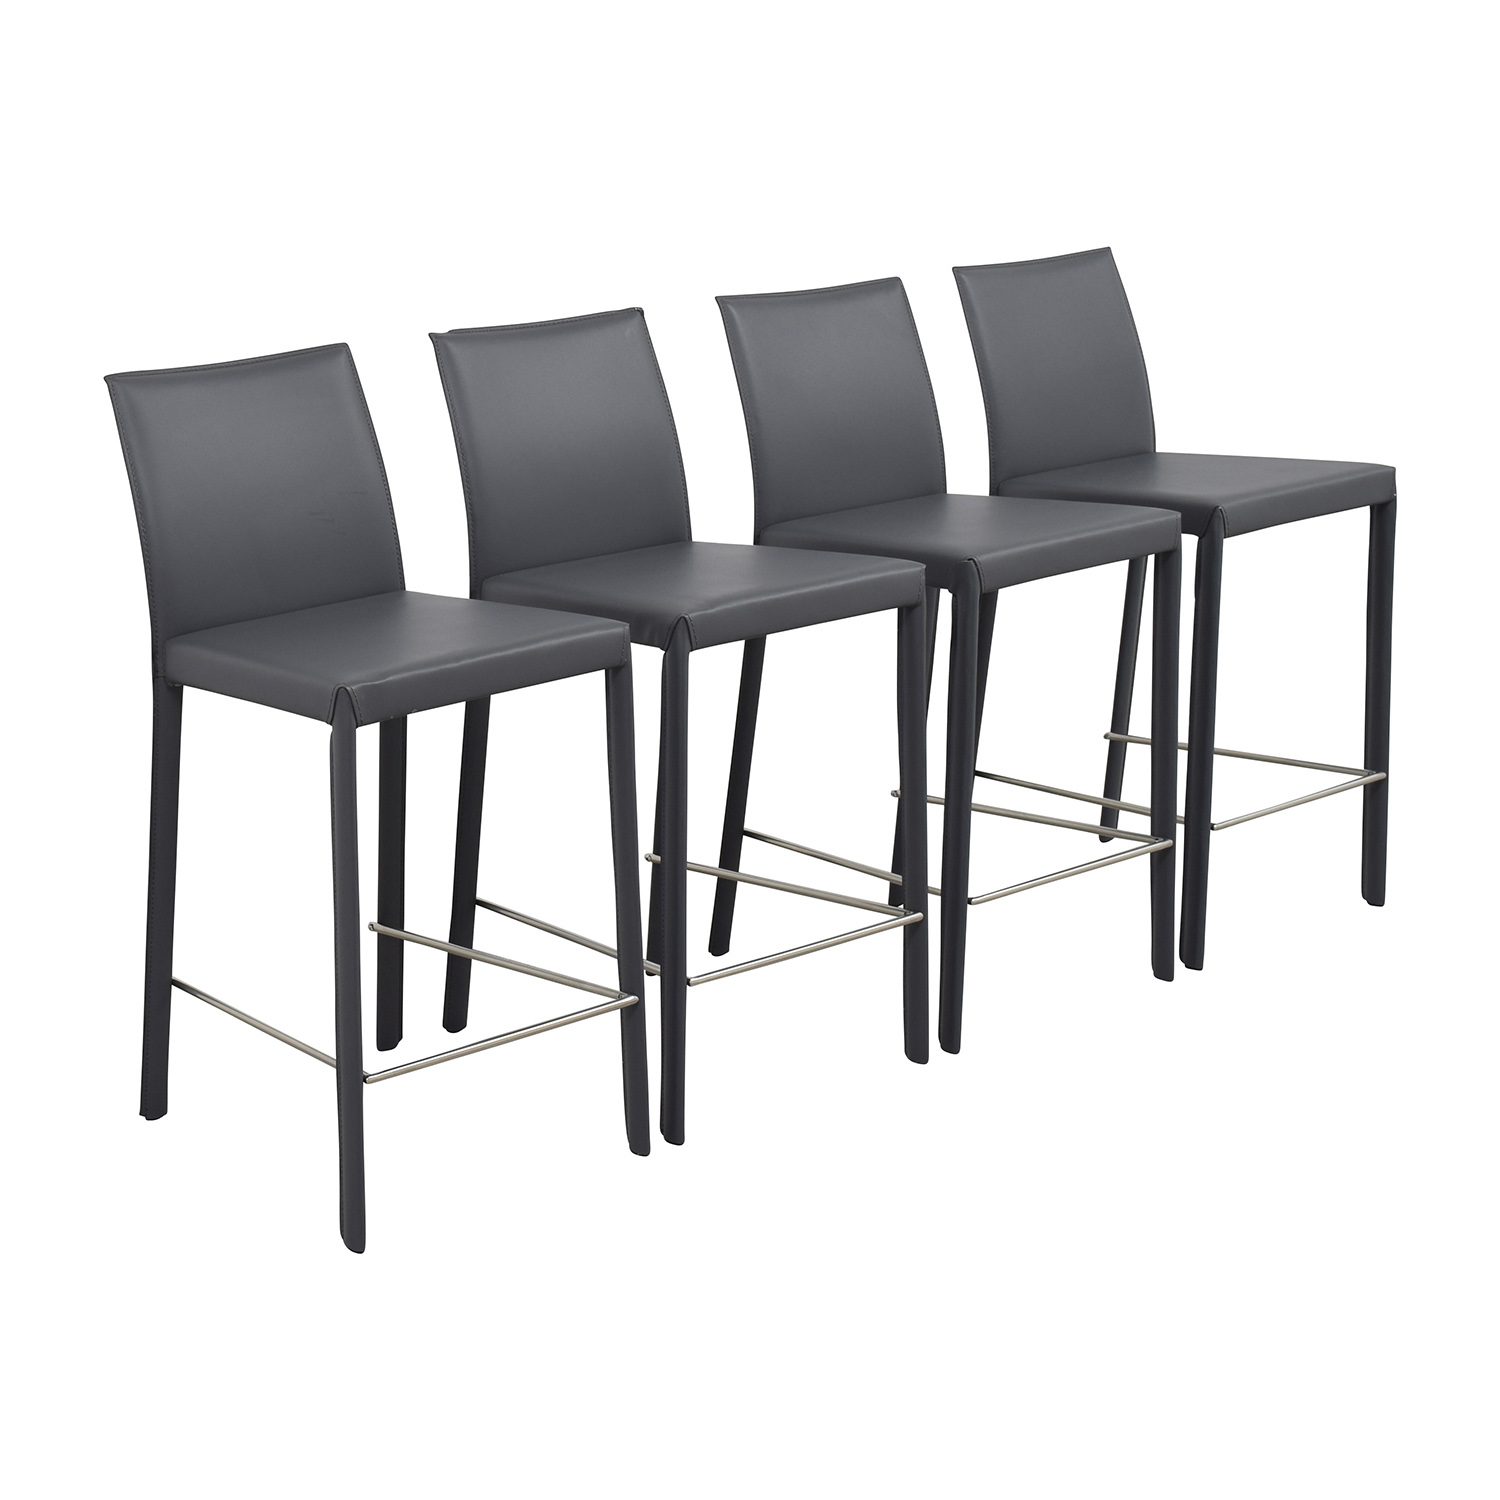 InMod InMod Hasina-C Black Leather Counter Stools second hand